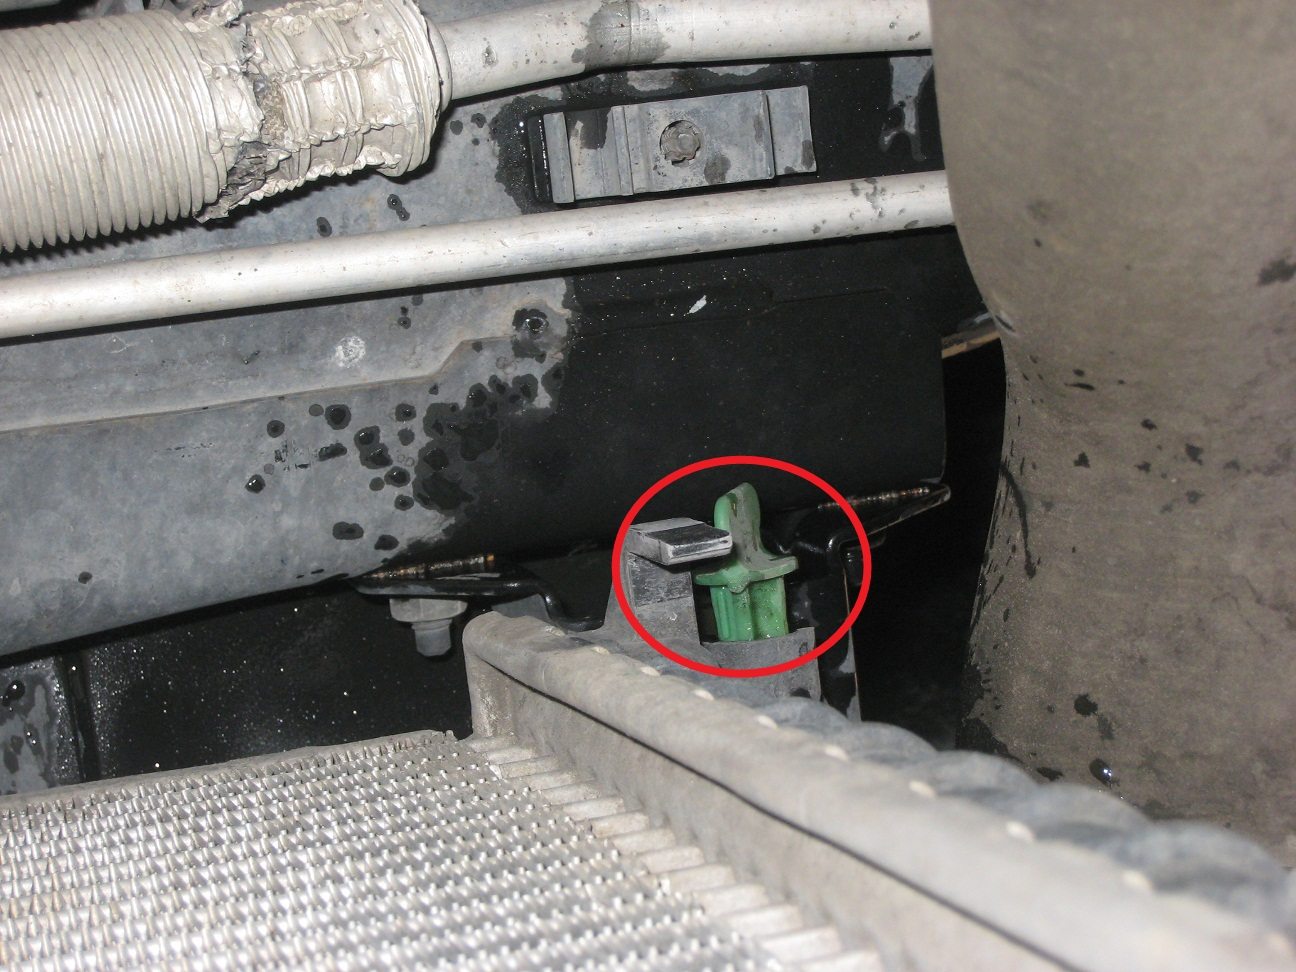 hight resolution of  5 drain coolant using green drain on bottom corner of the radiator use a catch pan and dispose of coolant properly